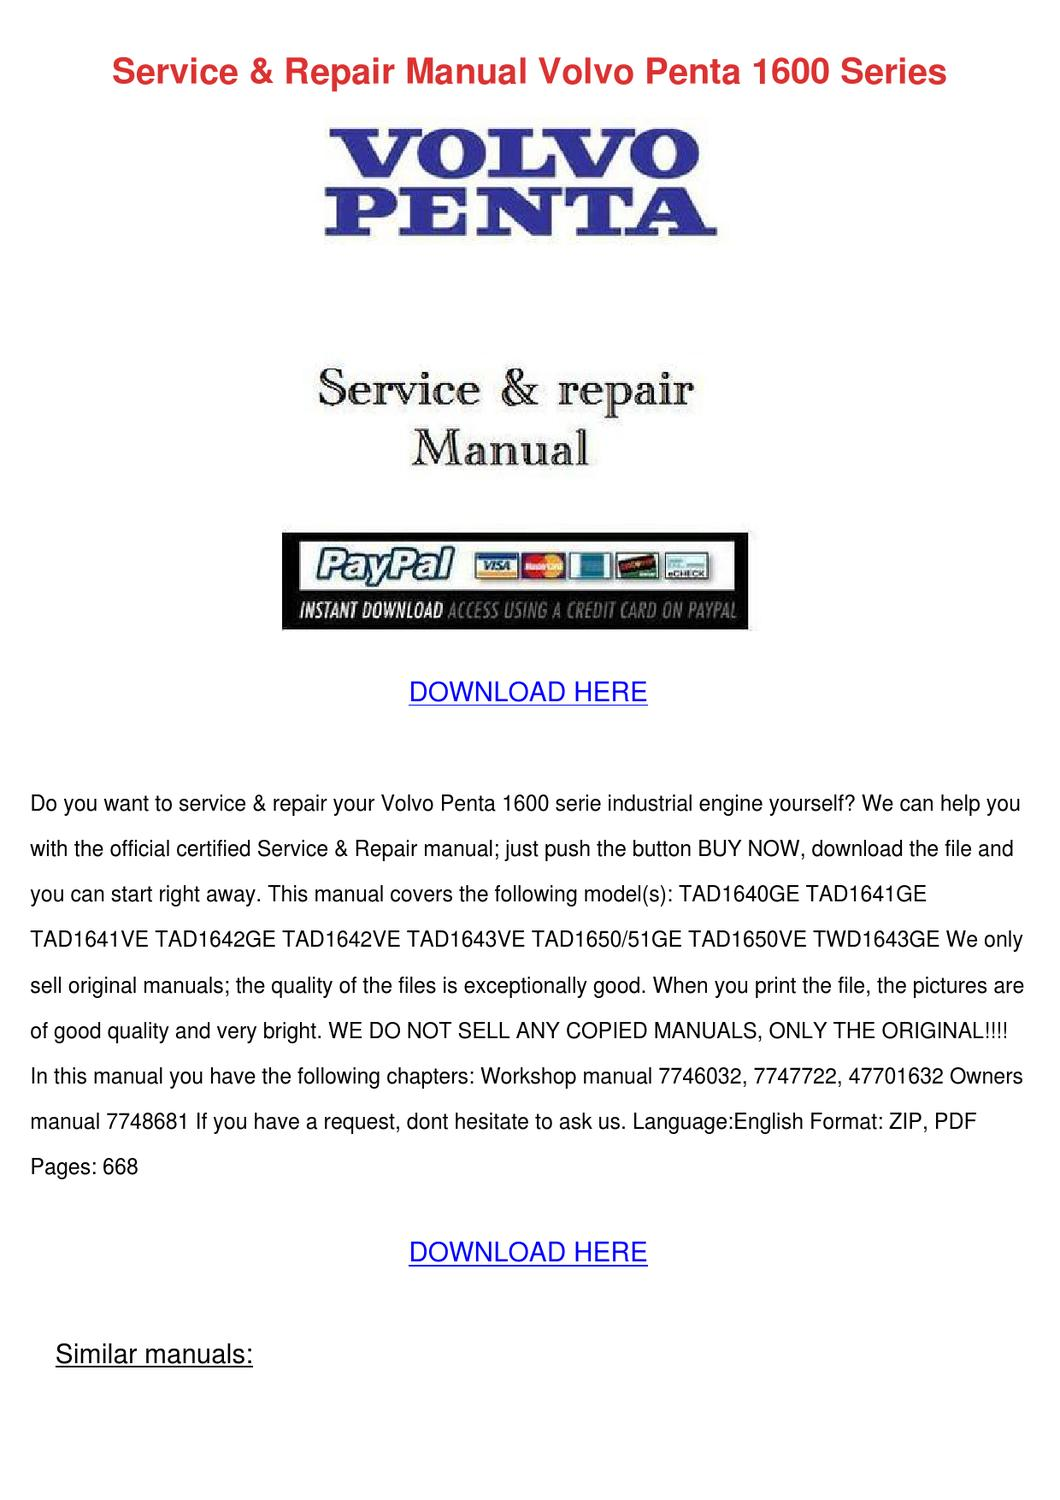 volvo penta repair manual download